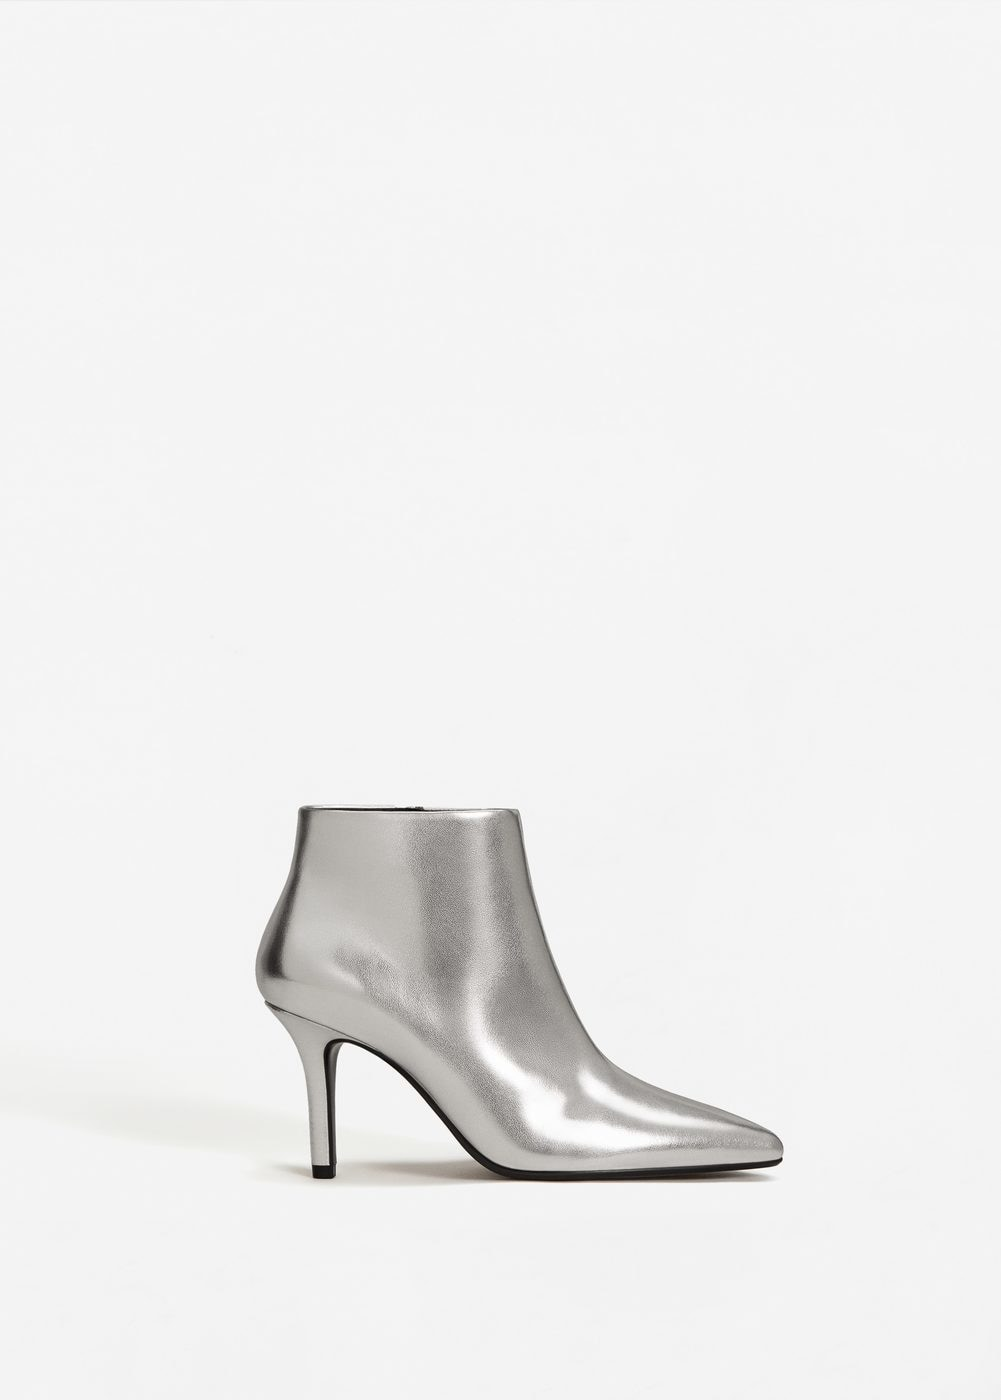 16. boots-mariee-metalisees-argent